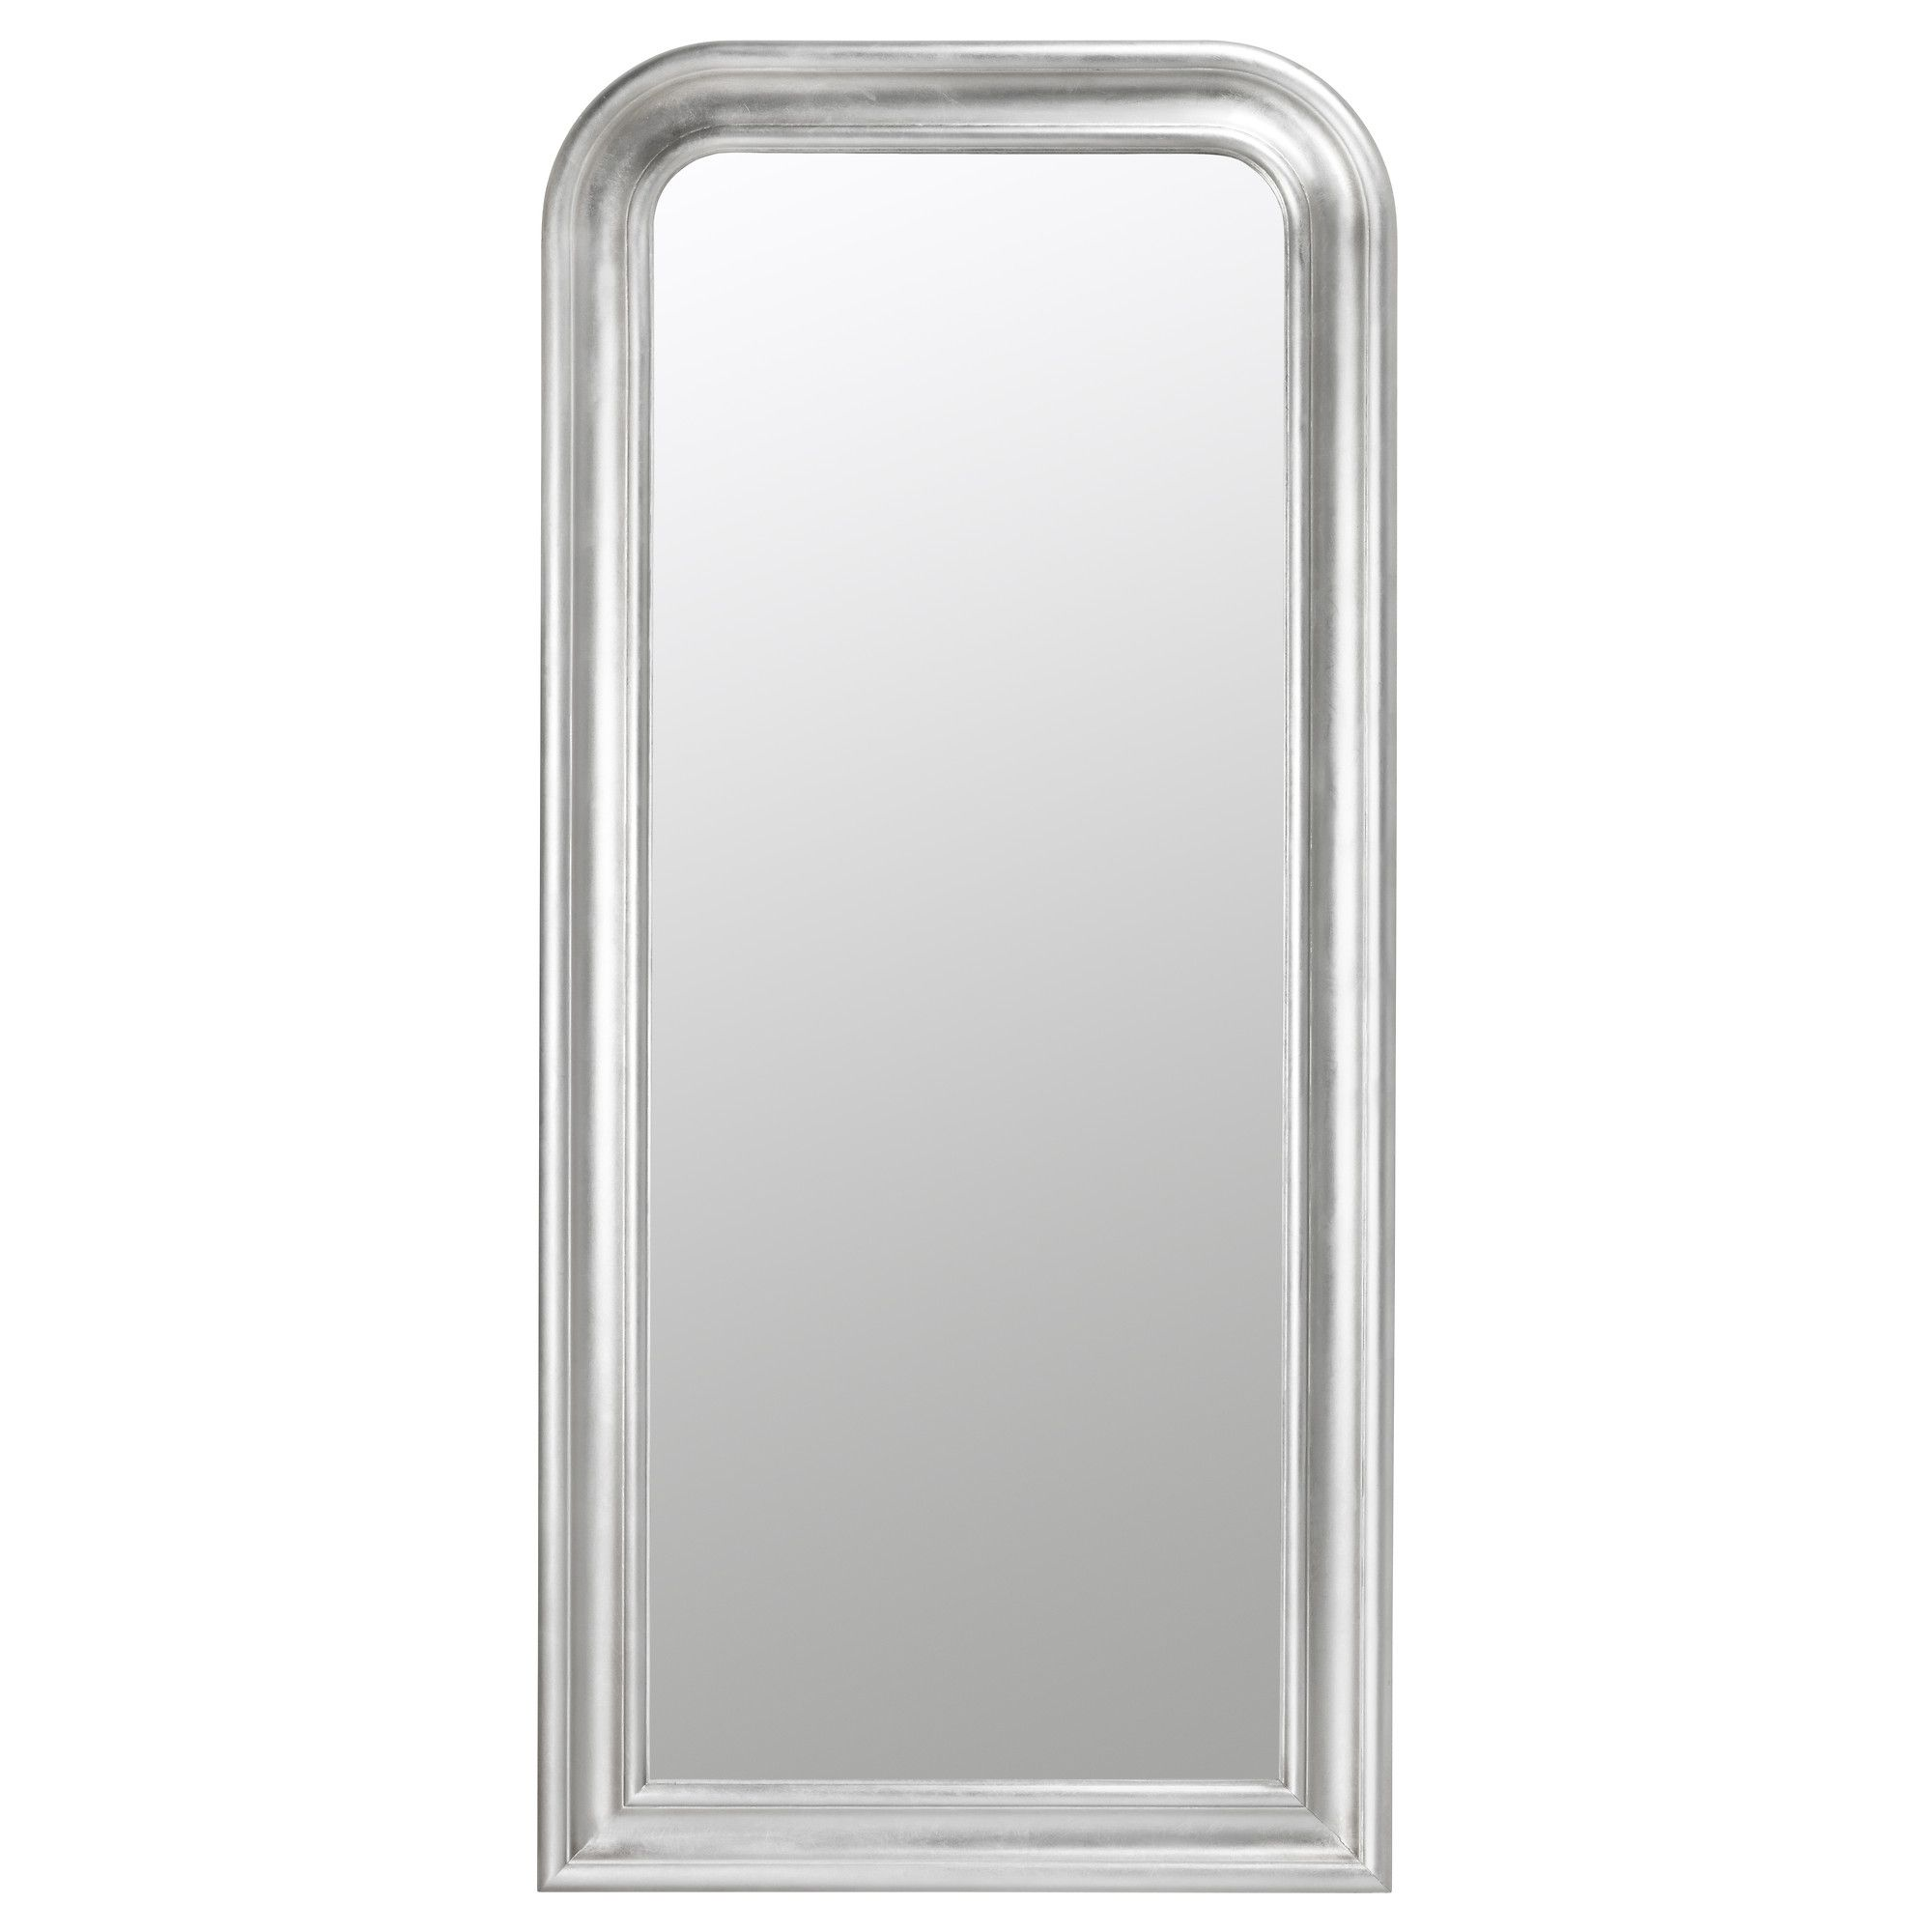 songe mirror ikea photo doesn 39 t do this mirror justice substantial piece one hundred bucks. Black Bedroom Furniture Sets. Home Design Ideas